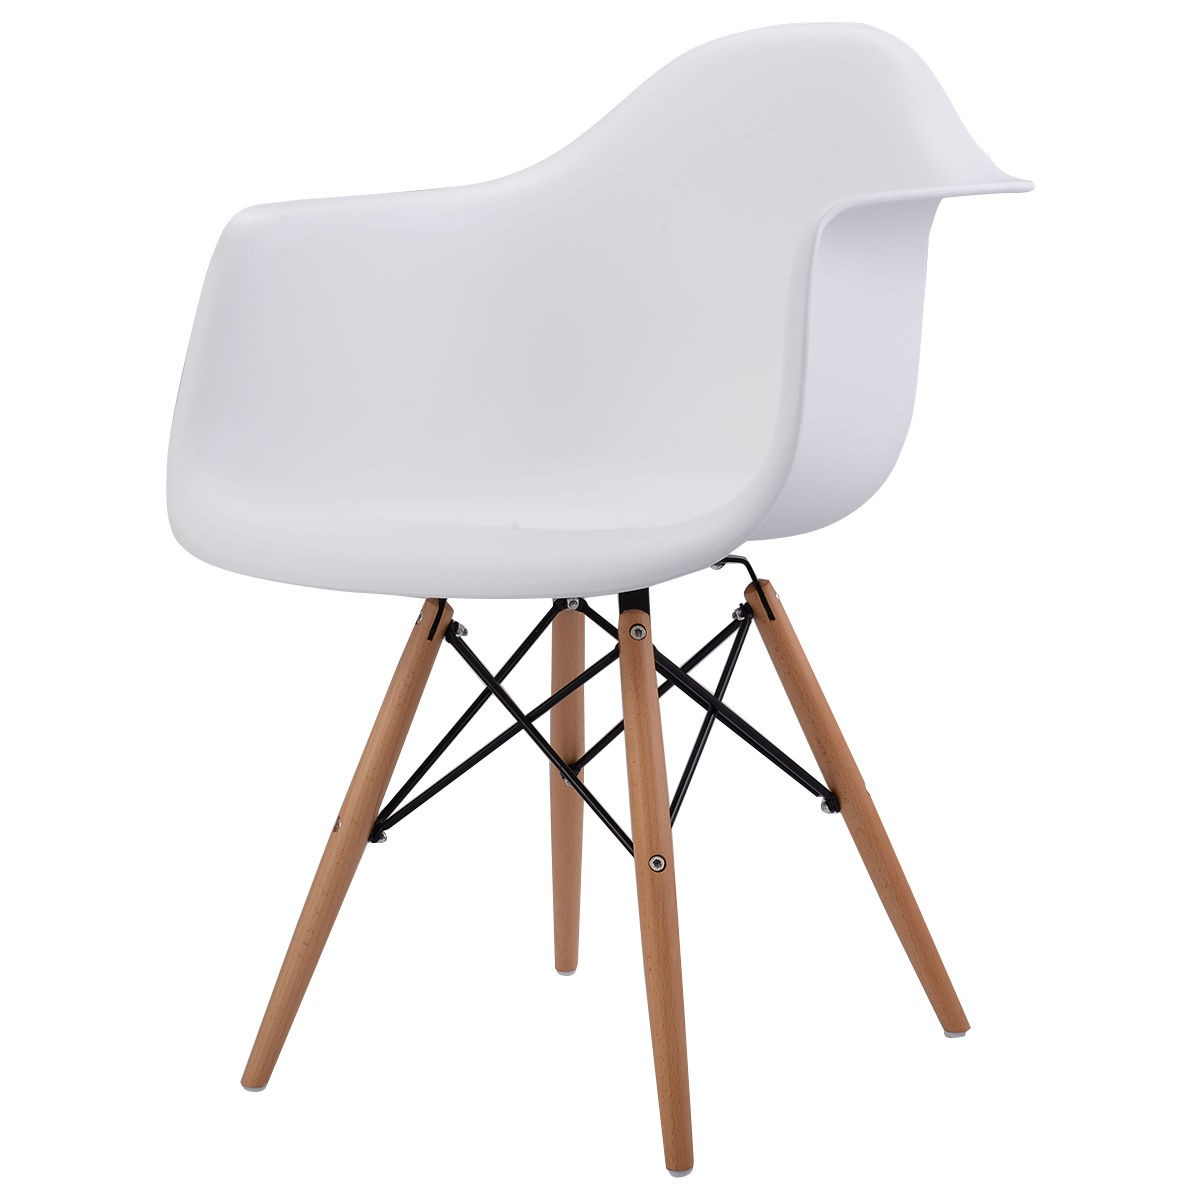 mid century modern plastic chairs parsons for sale new 1pc molded stylish dining arm chair wood legs